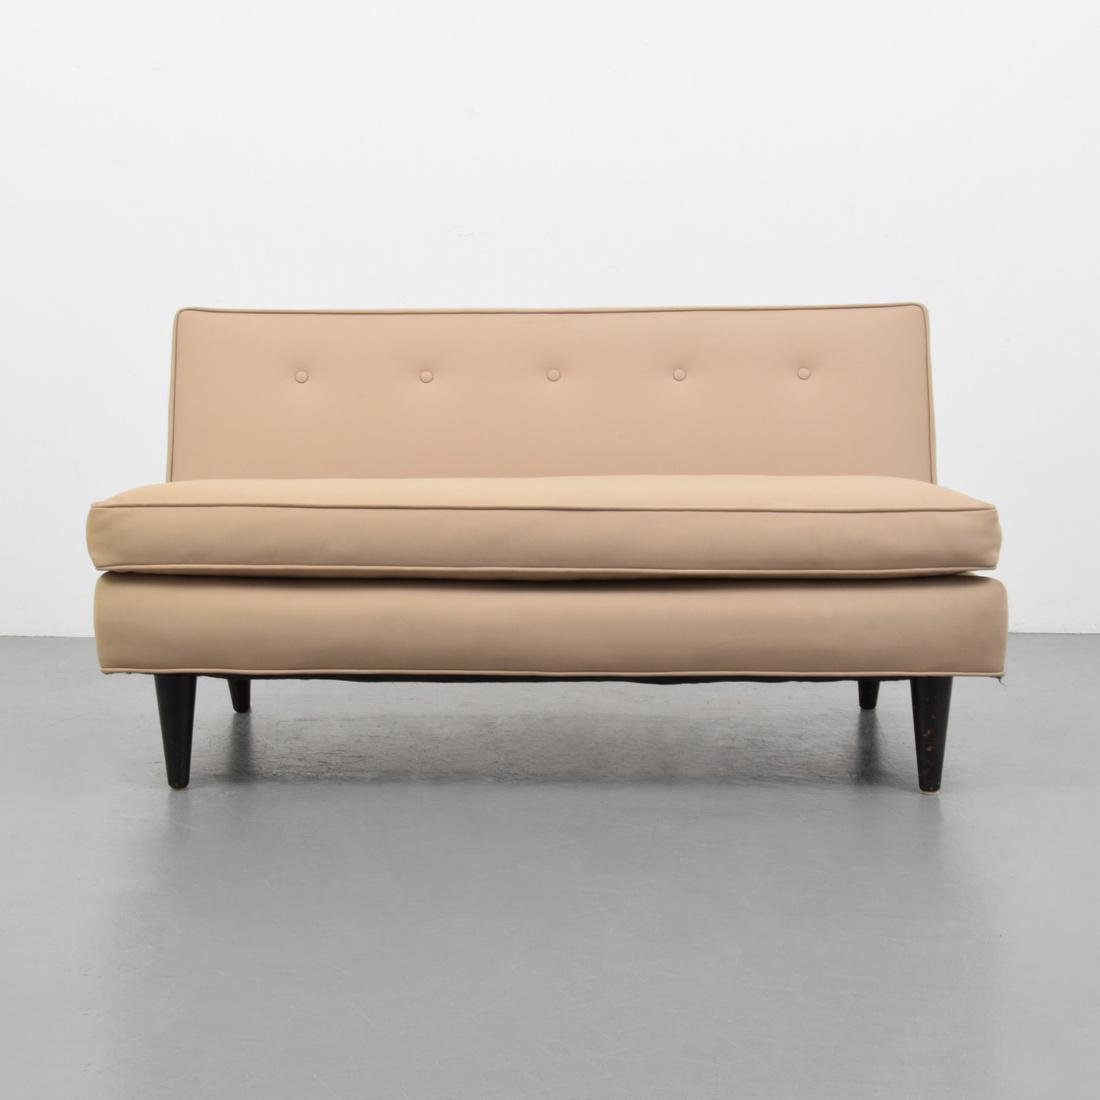 Edward Wormley Loveseat/Sofa - 7